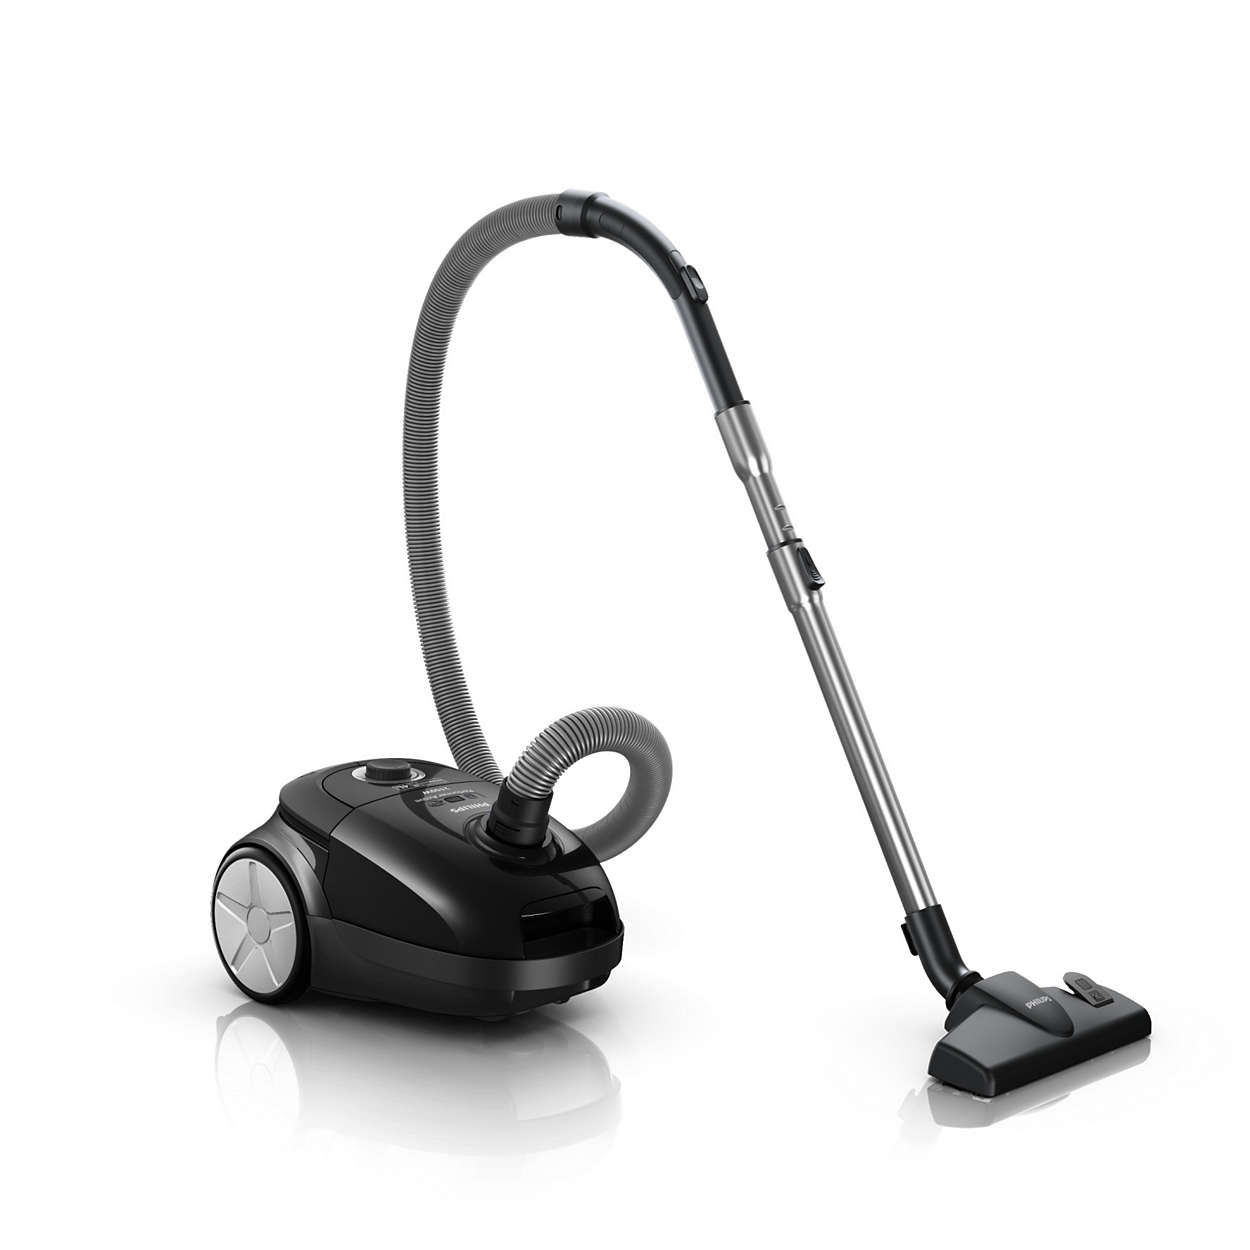 Maximum suction power for better cleaning results*